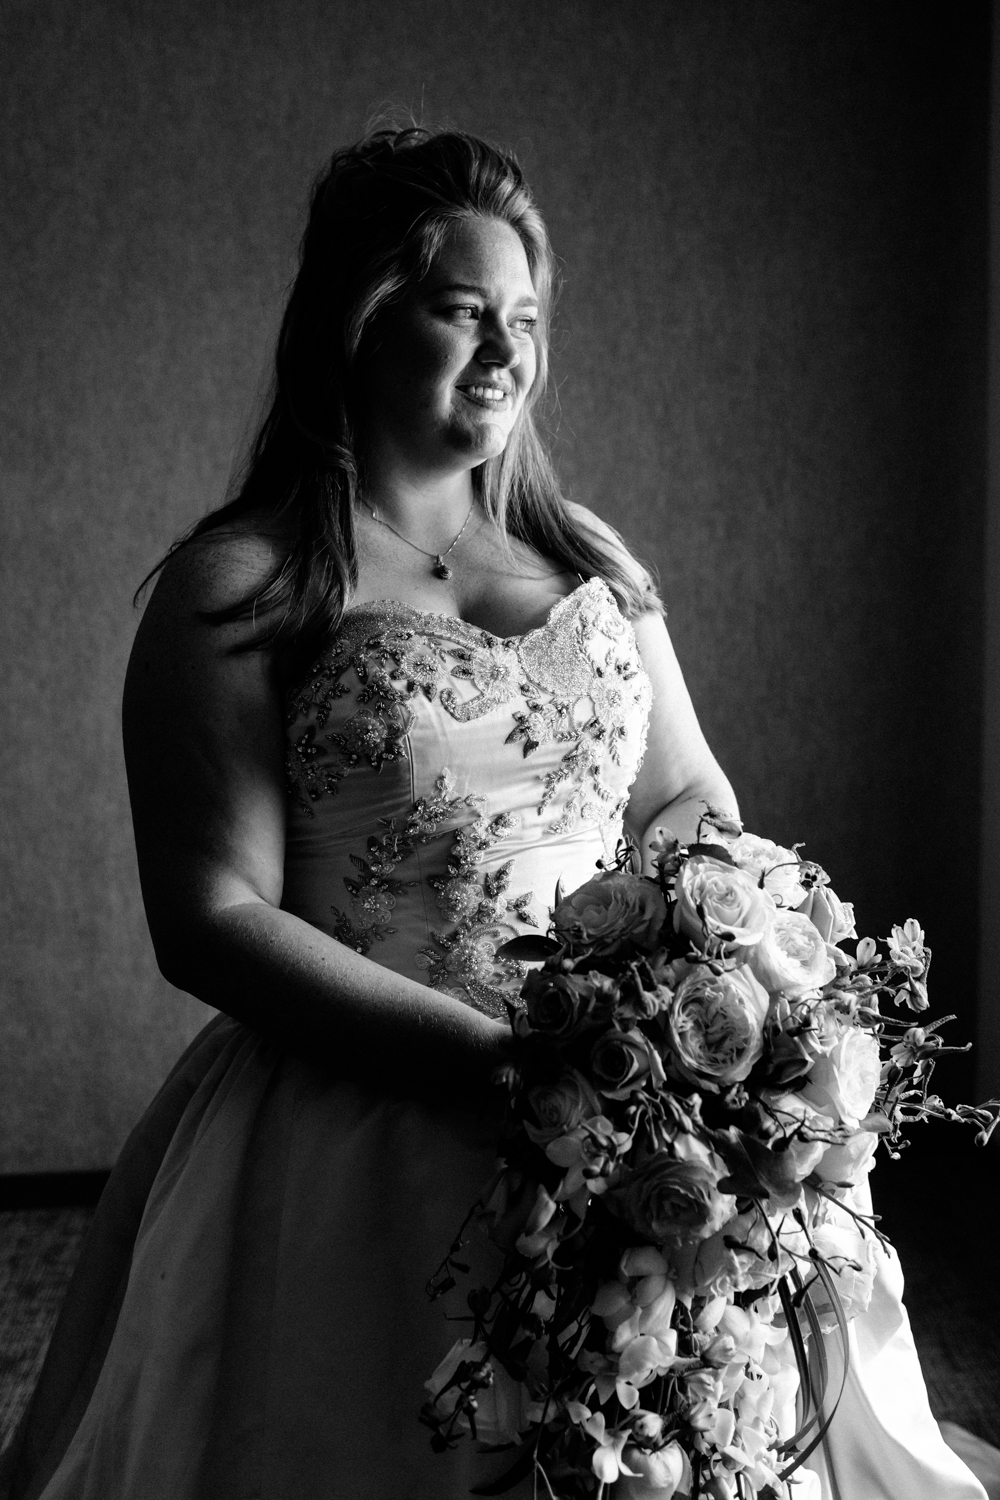 Black and white image of the bride holding her flowers. She looks out a window.